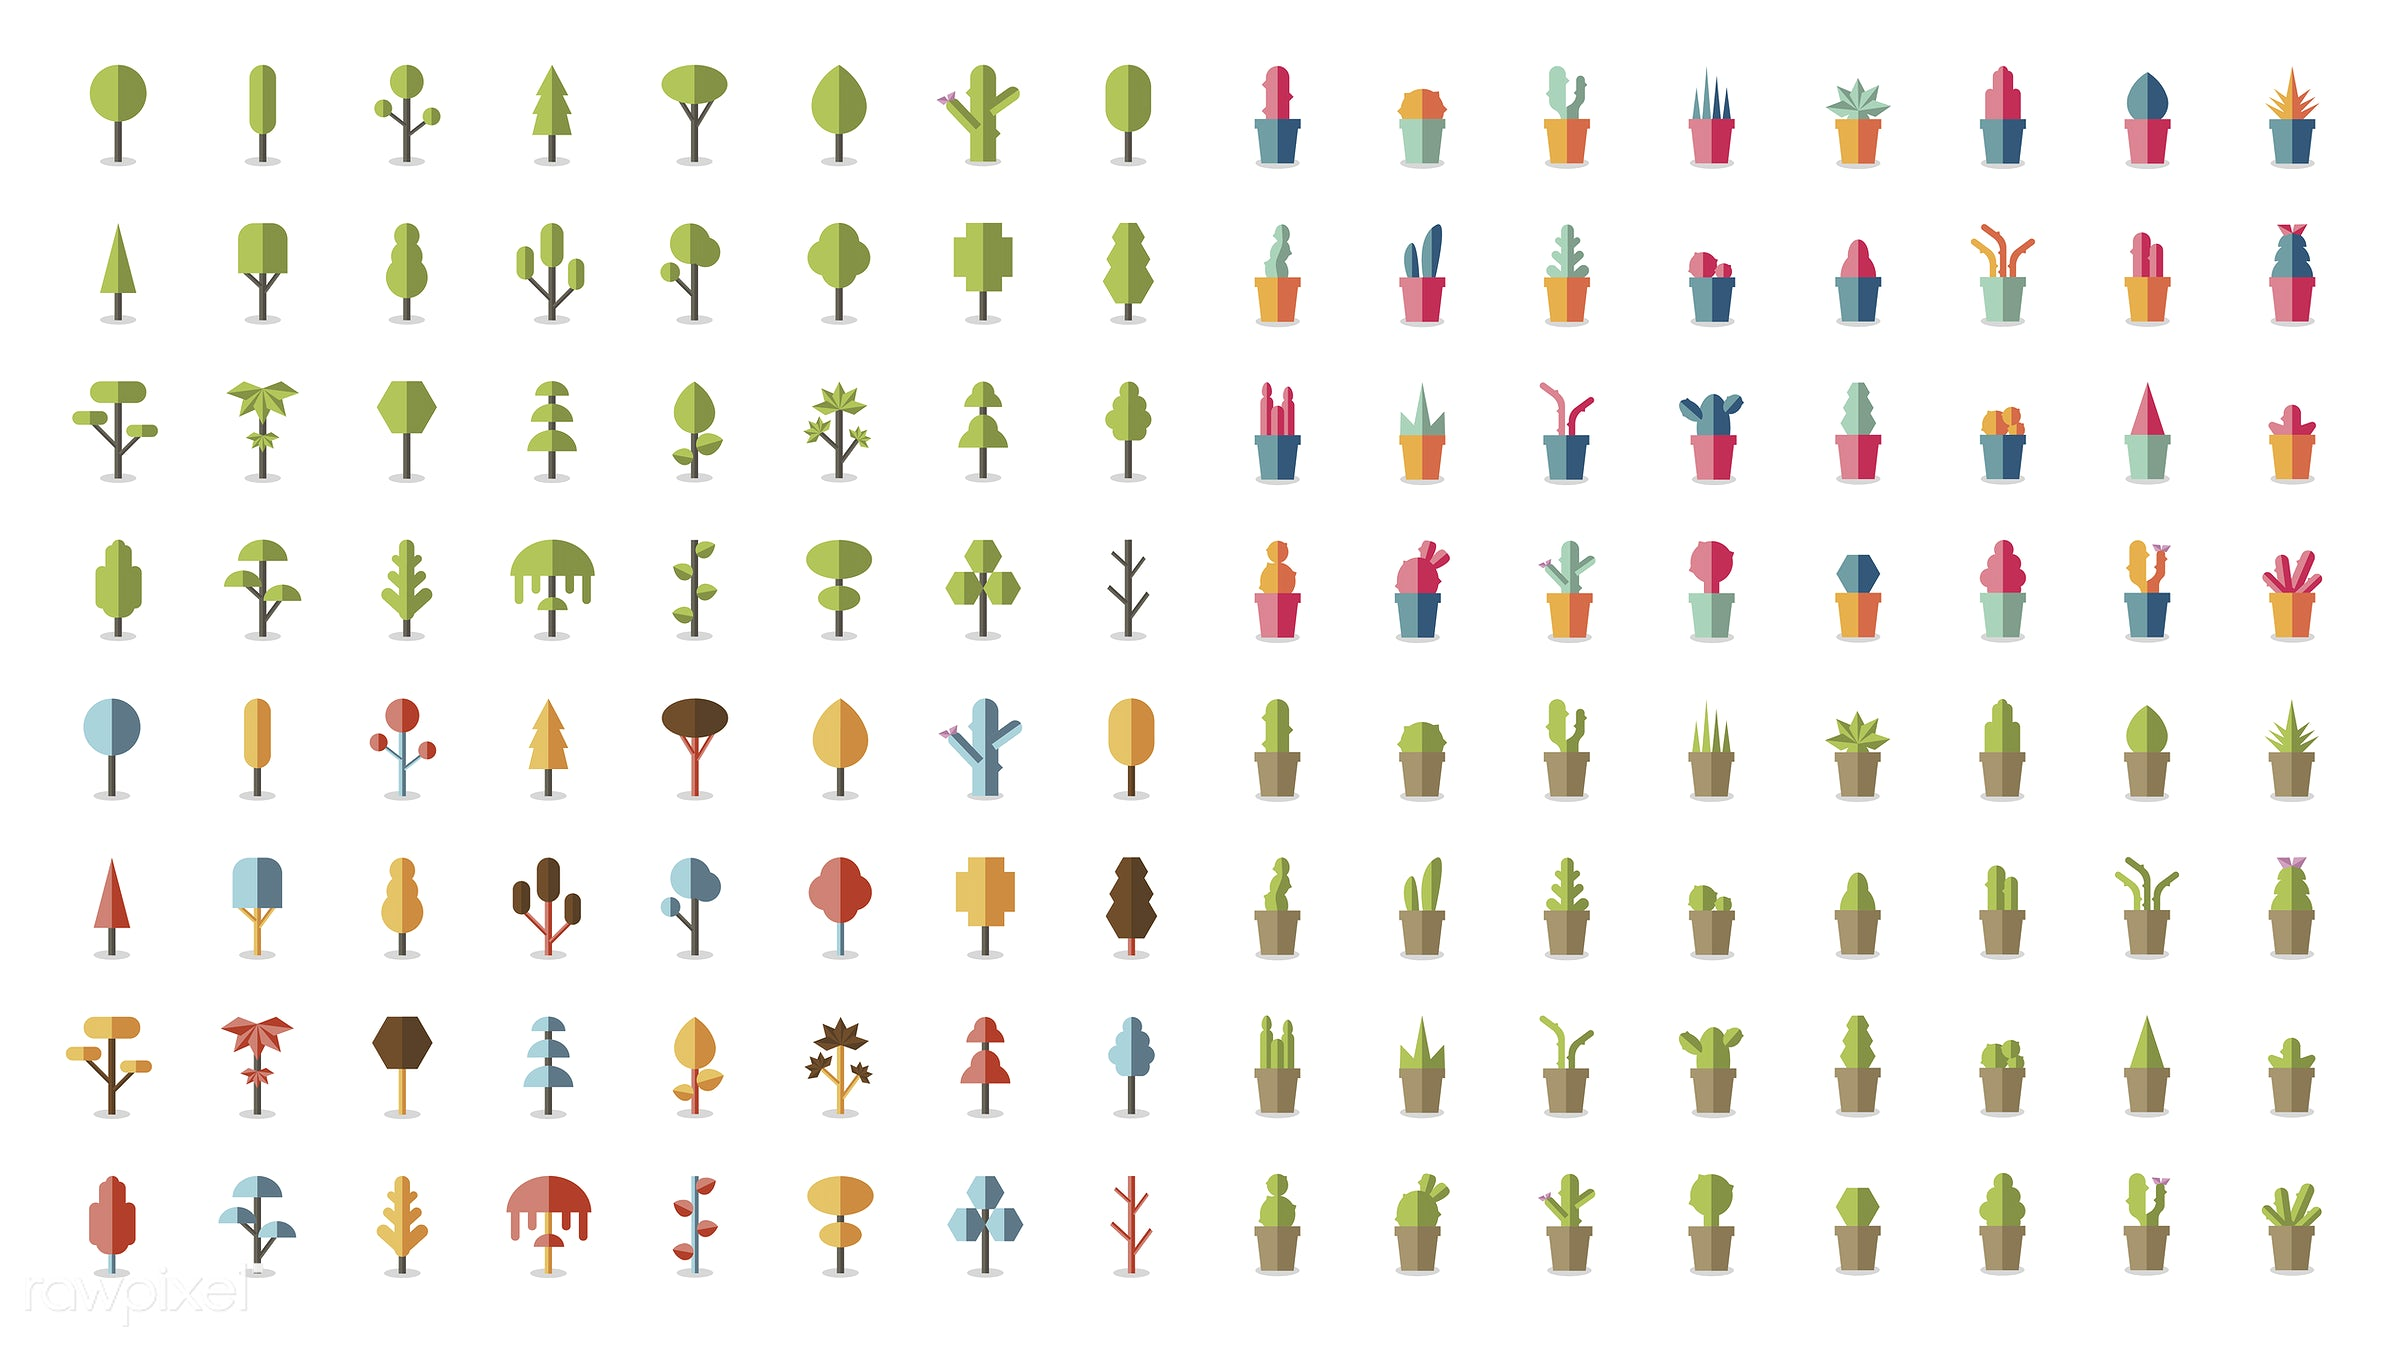 Collection of plants and tree vectors - brown, bush, cacti, cactus, collection, colorful, cute, gardening, graphic, green,...